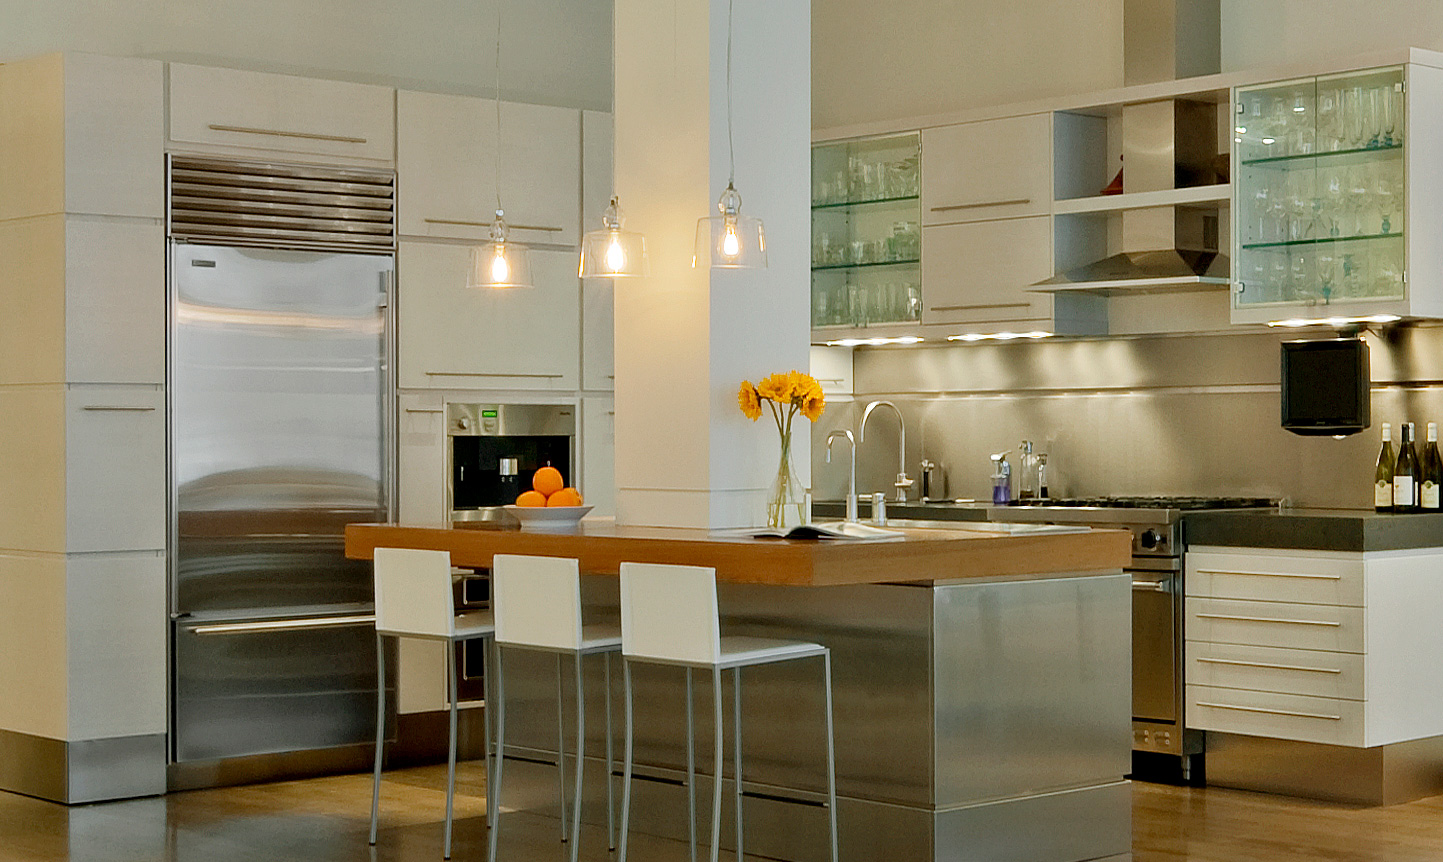 new-york-architect-loft-kitchen2.jpg